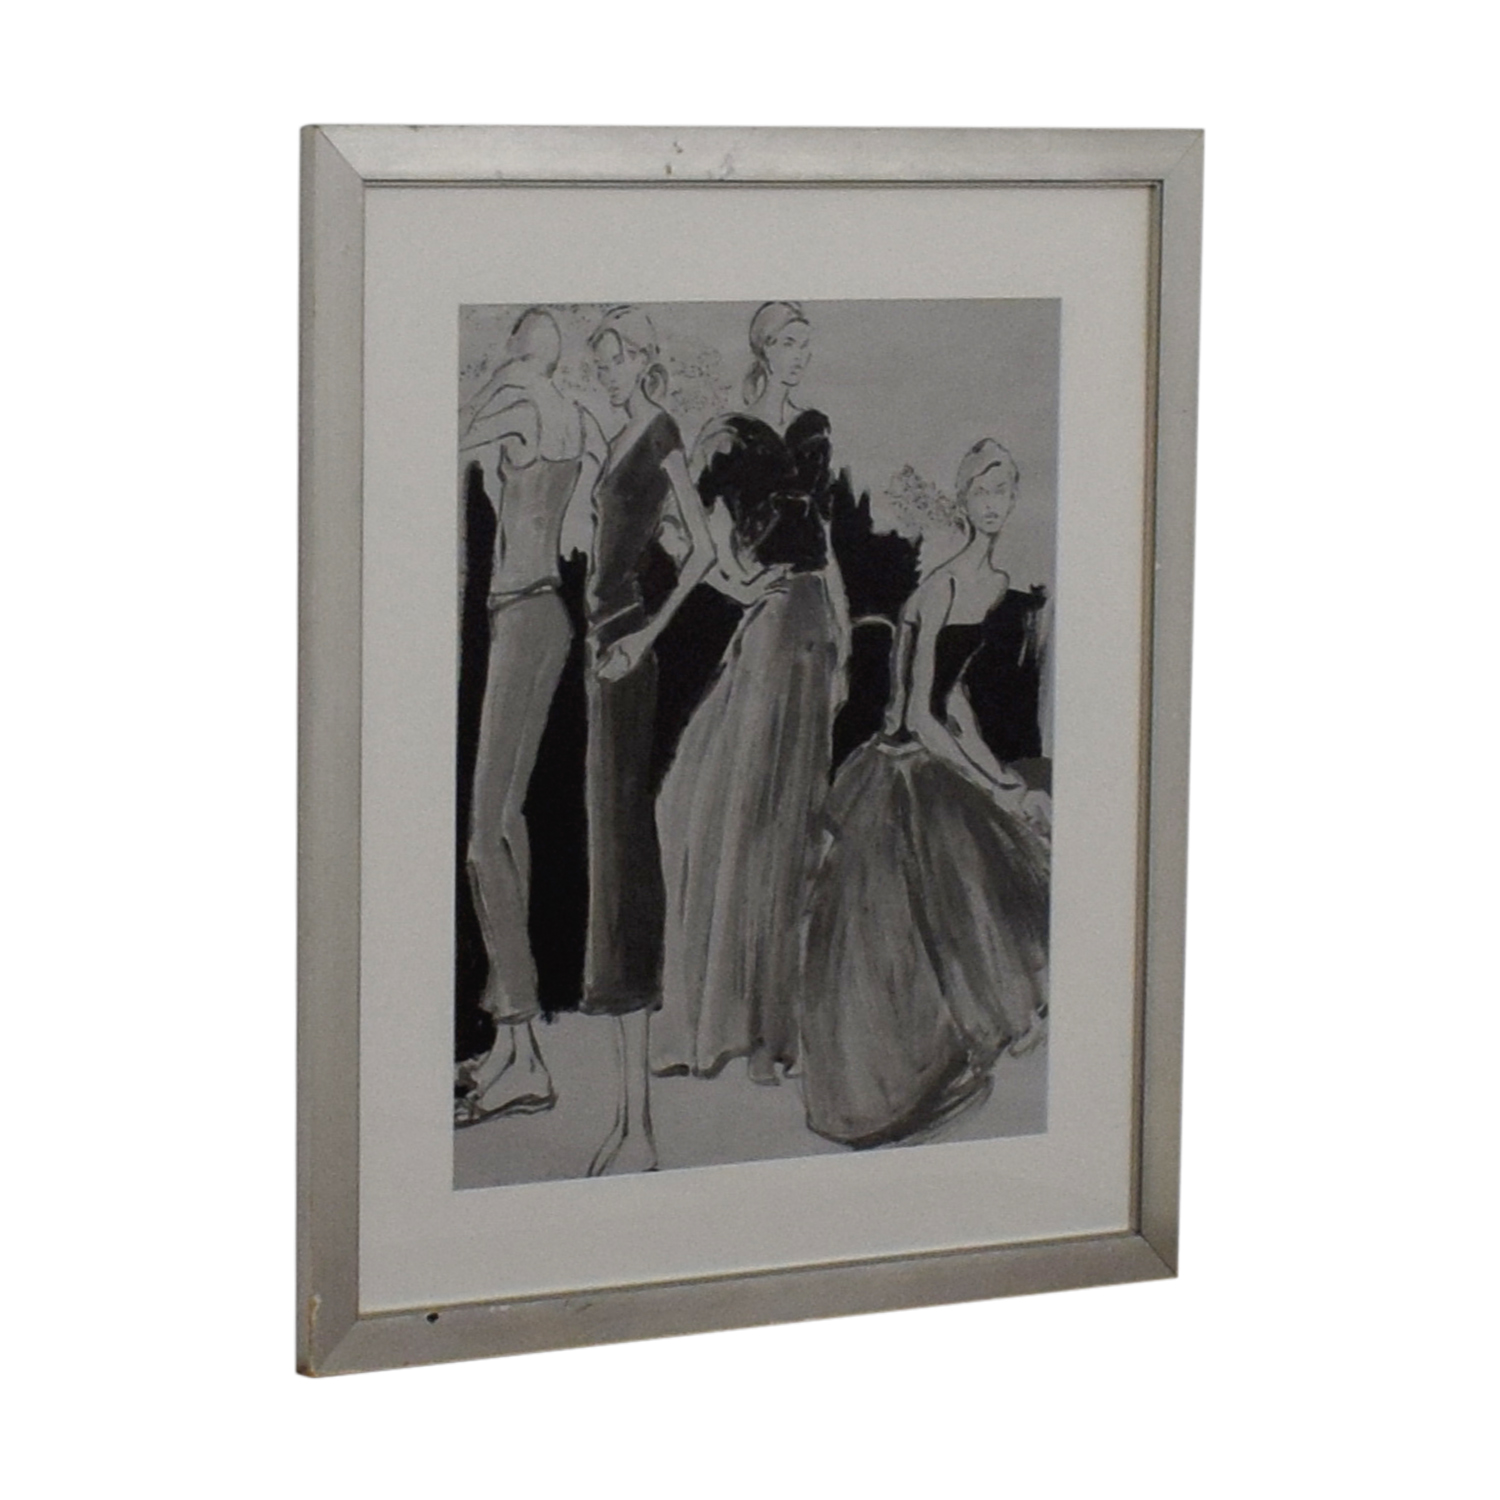 Black and White Fashion Sketch Framed Art